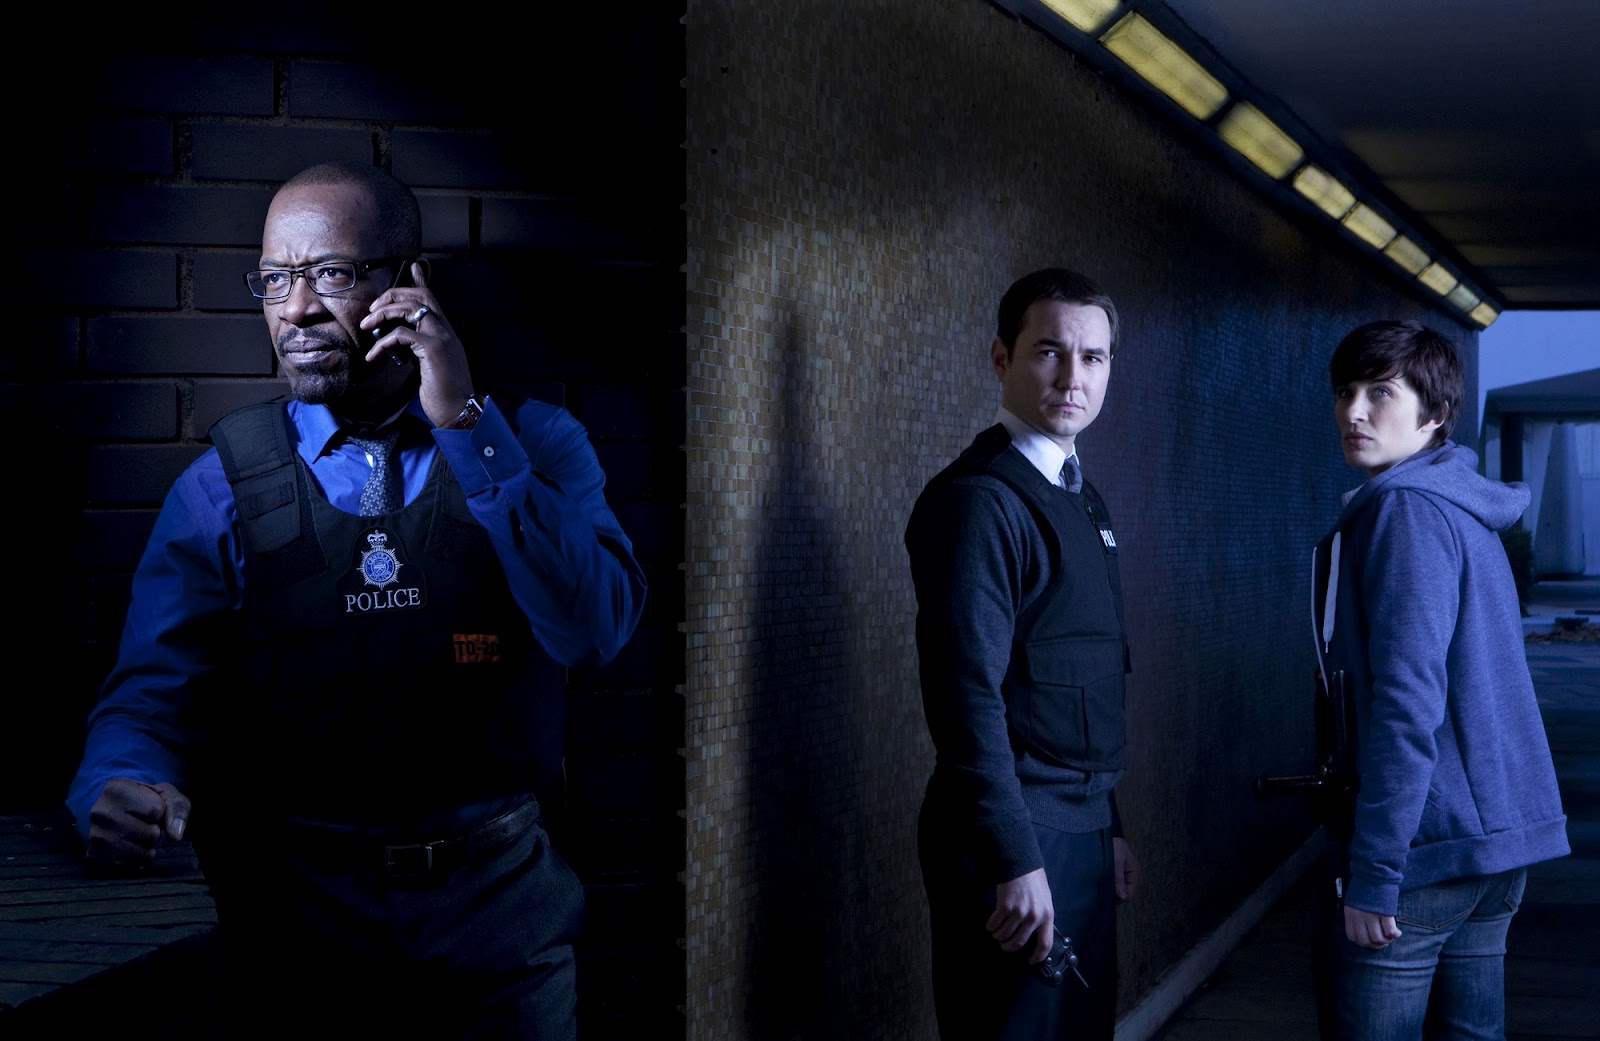 Crime Time Preview: Line of Duty starring Lennie James PREVIEW